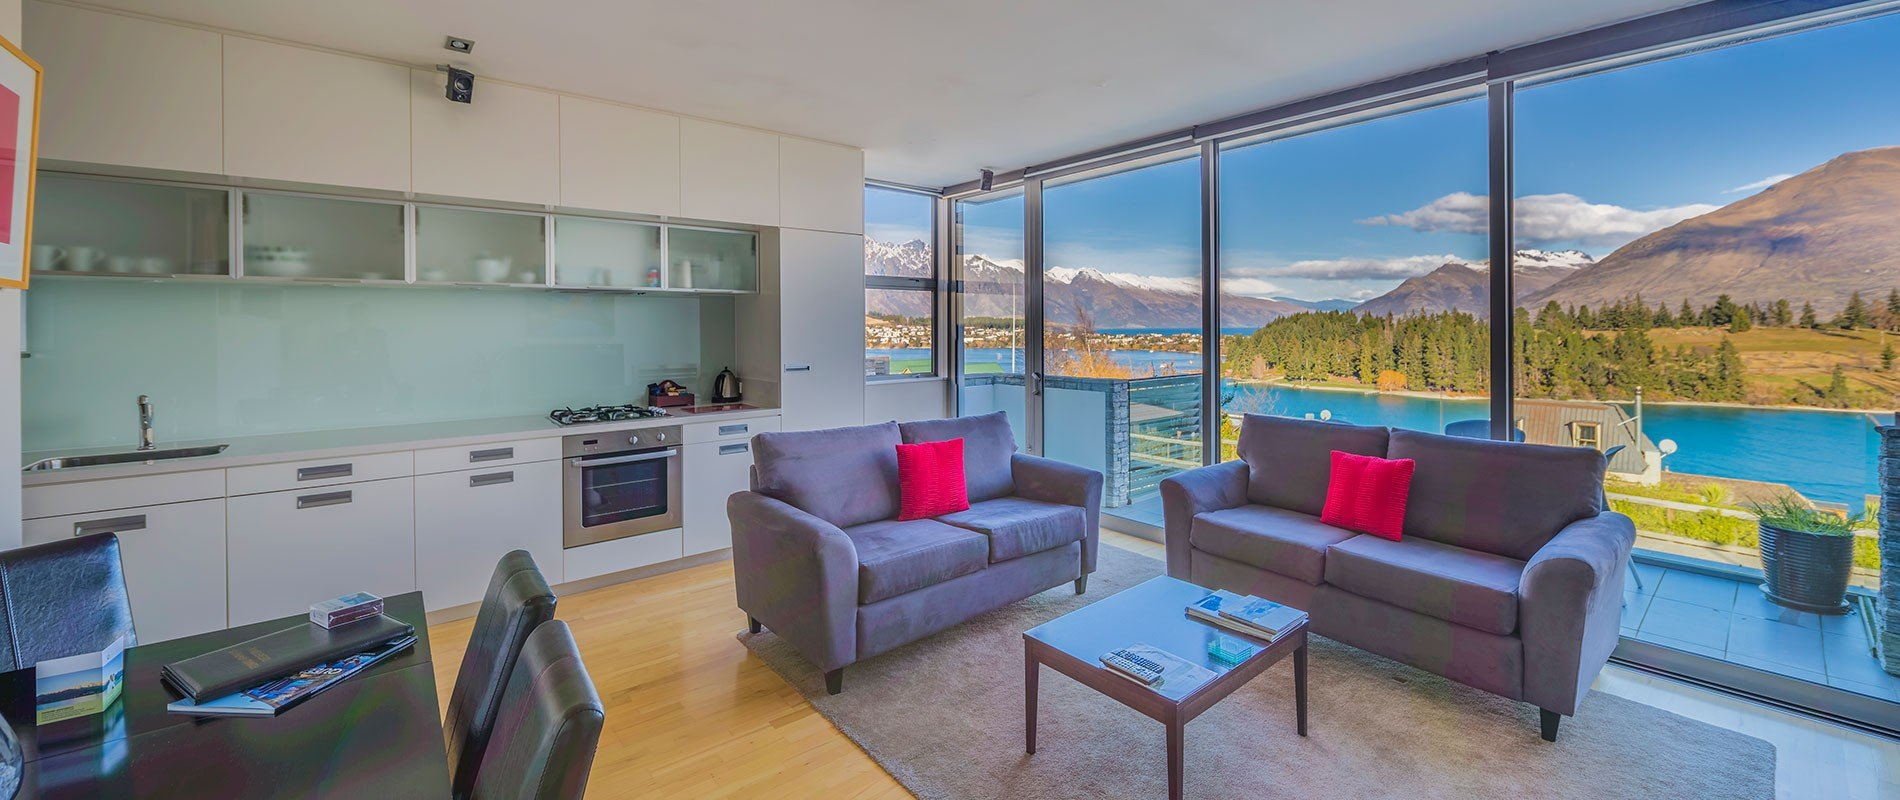 New Zealand Accommodation Queenstown Apartments | New ...